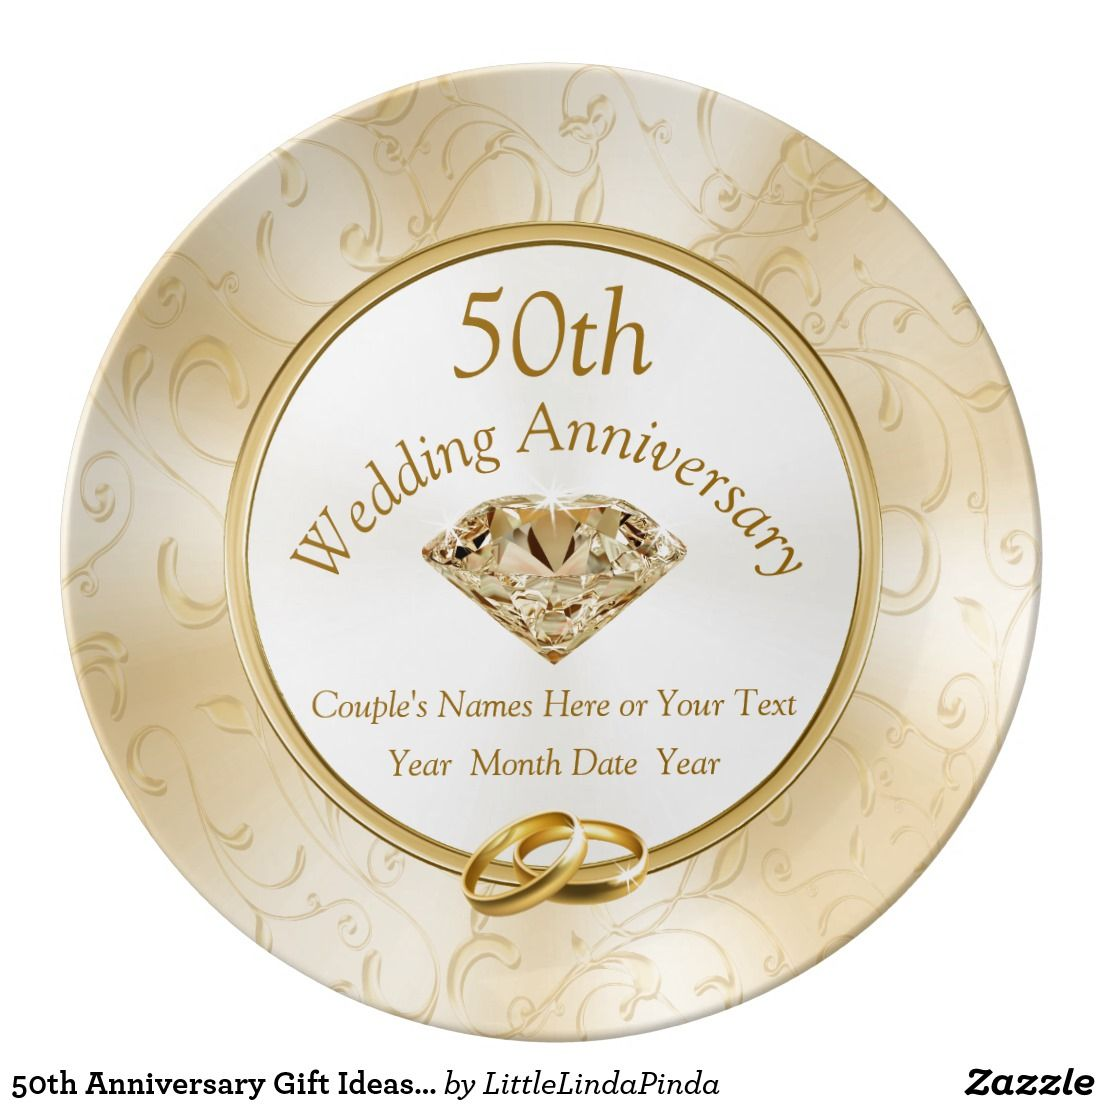 50th Anniversary Gift Ideas For Friends Family Plate Zazzle Com In 2020 50th Anniversary Gifts Golden Anniversary Gifts Anniversary Gifts